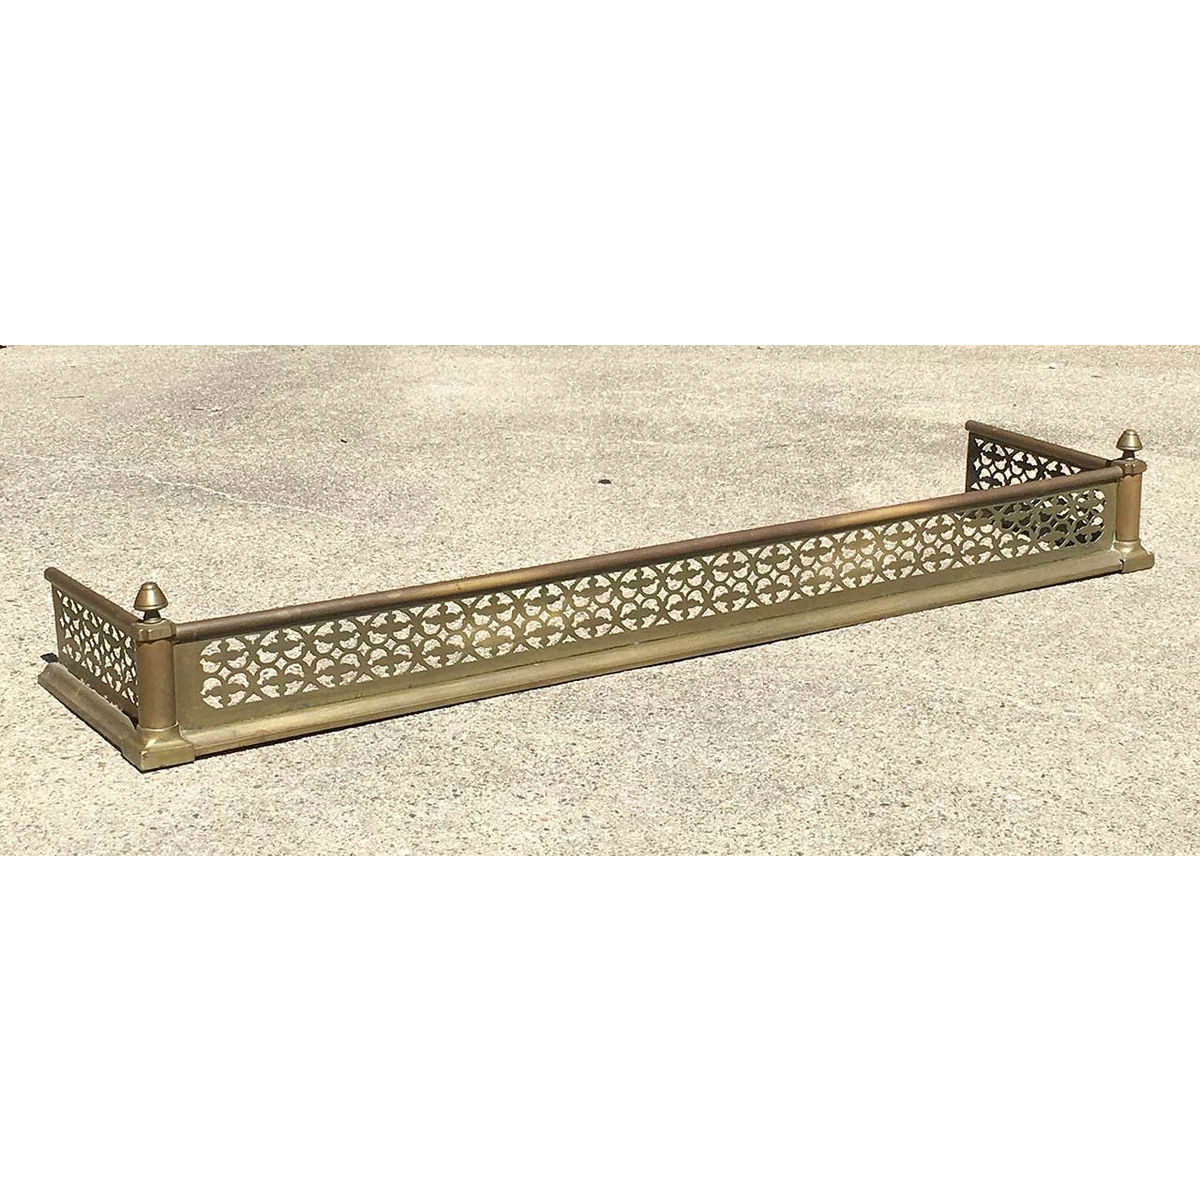 M17008 Antique Colonial Revival Brass Fireplace Fender